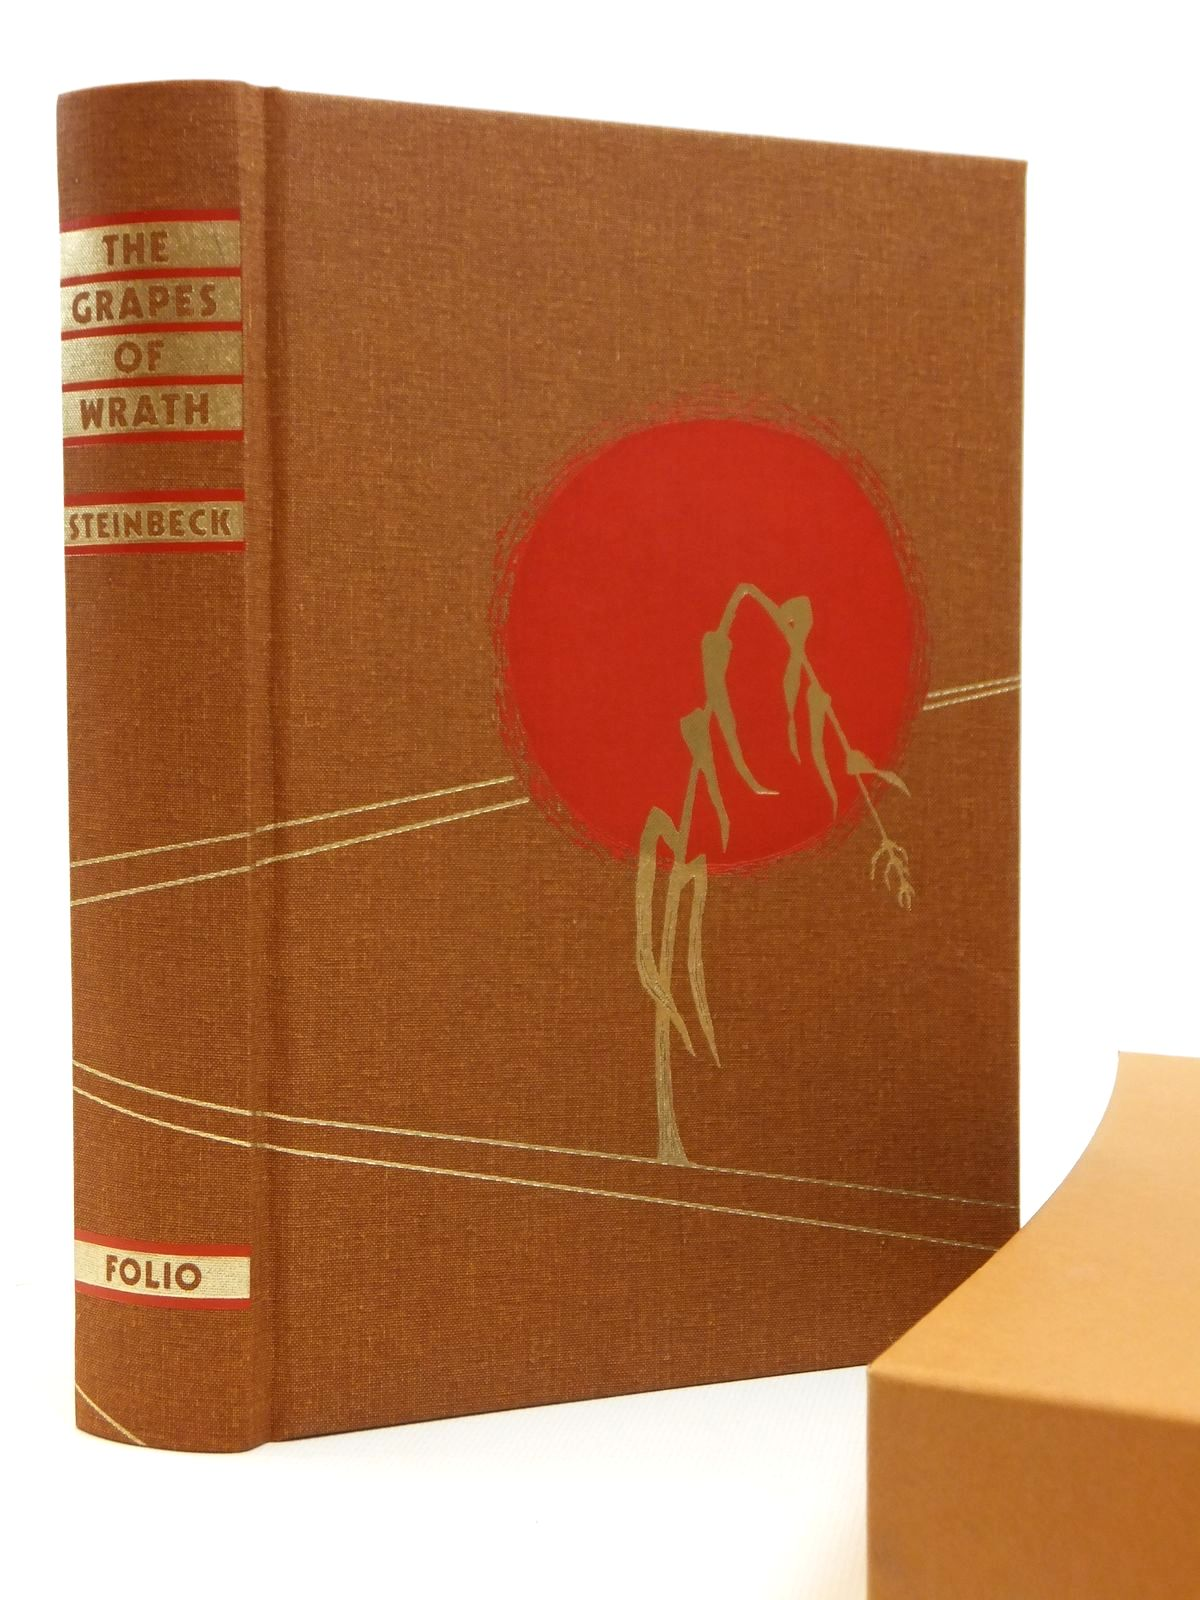 Photo of THE GRAPES OF WRATH written by Steinbeck, John illustrated by Christensen, Bonnie published by Folio Society (STOCK CODE: 2121909)  for sale by Stella & Rose's Books